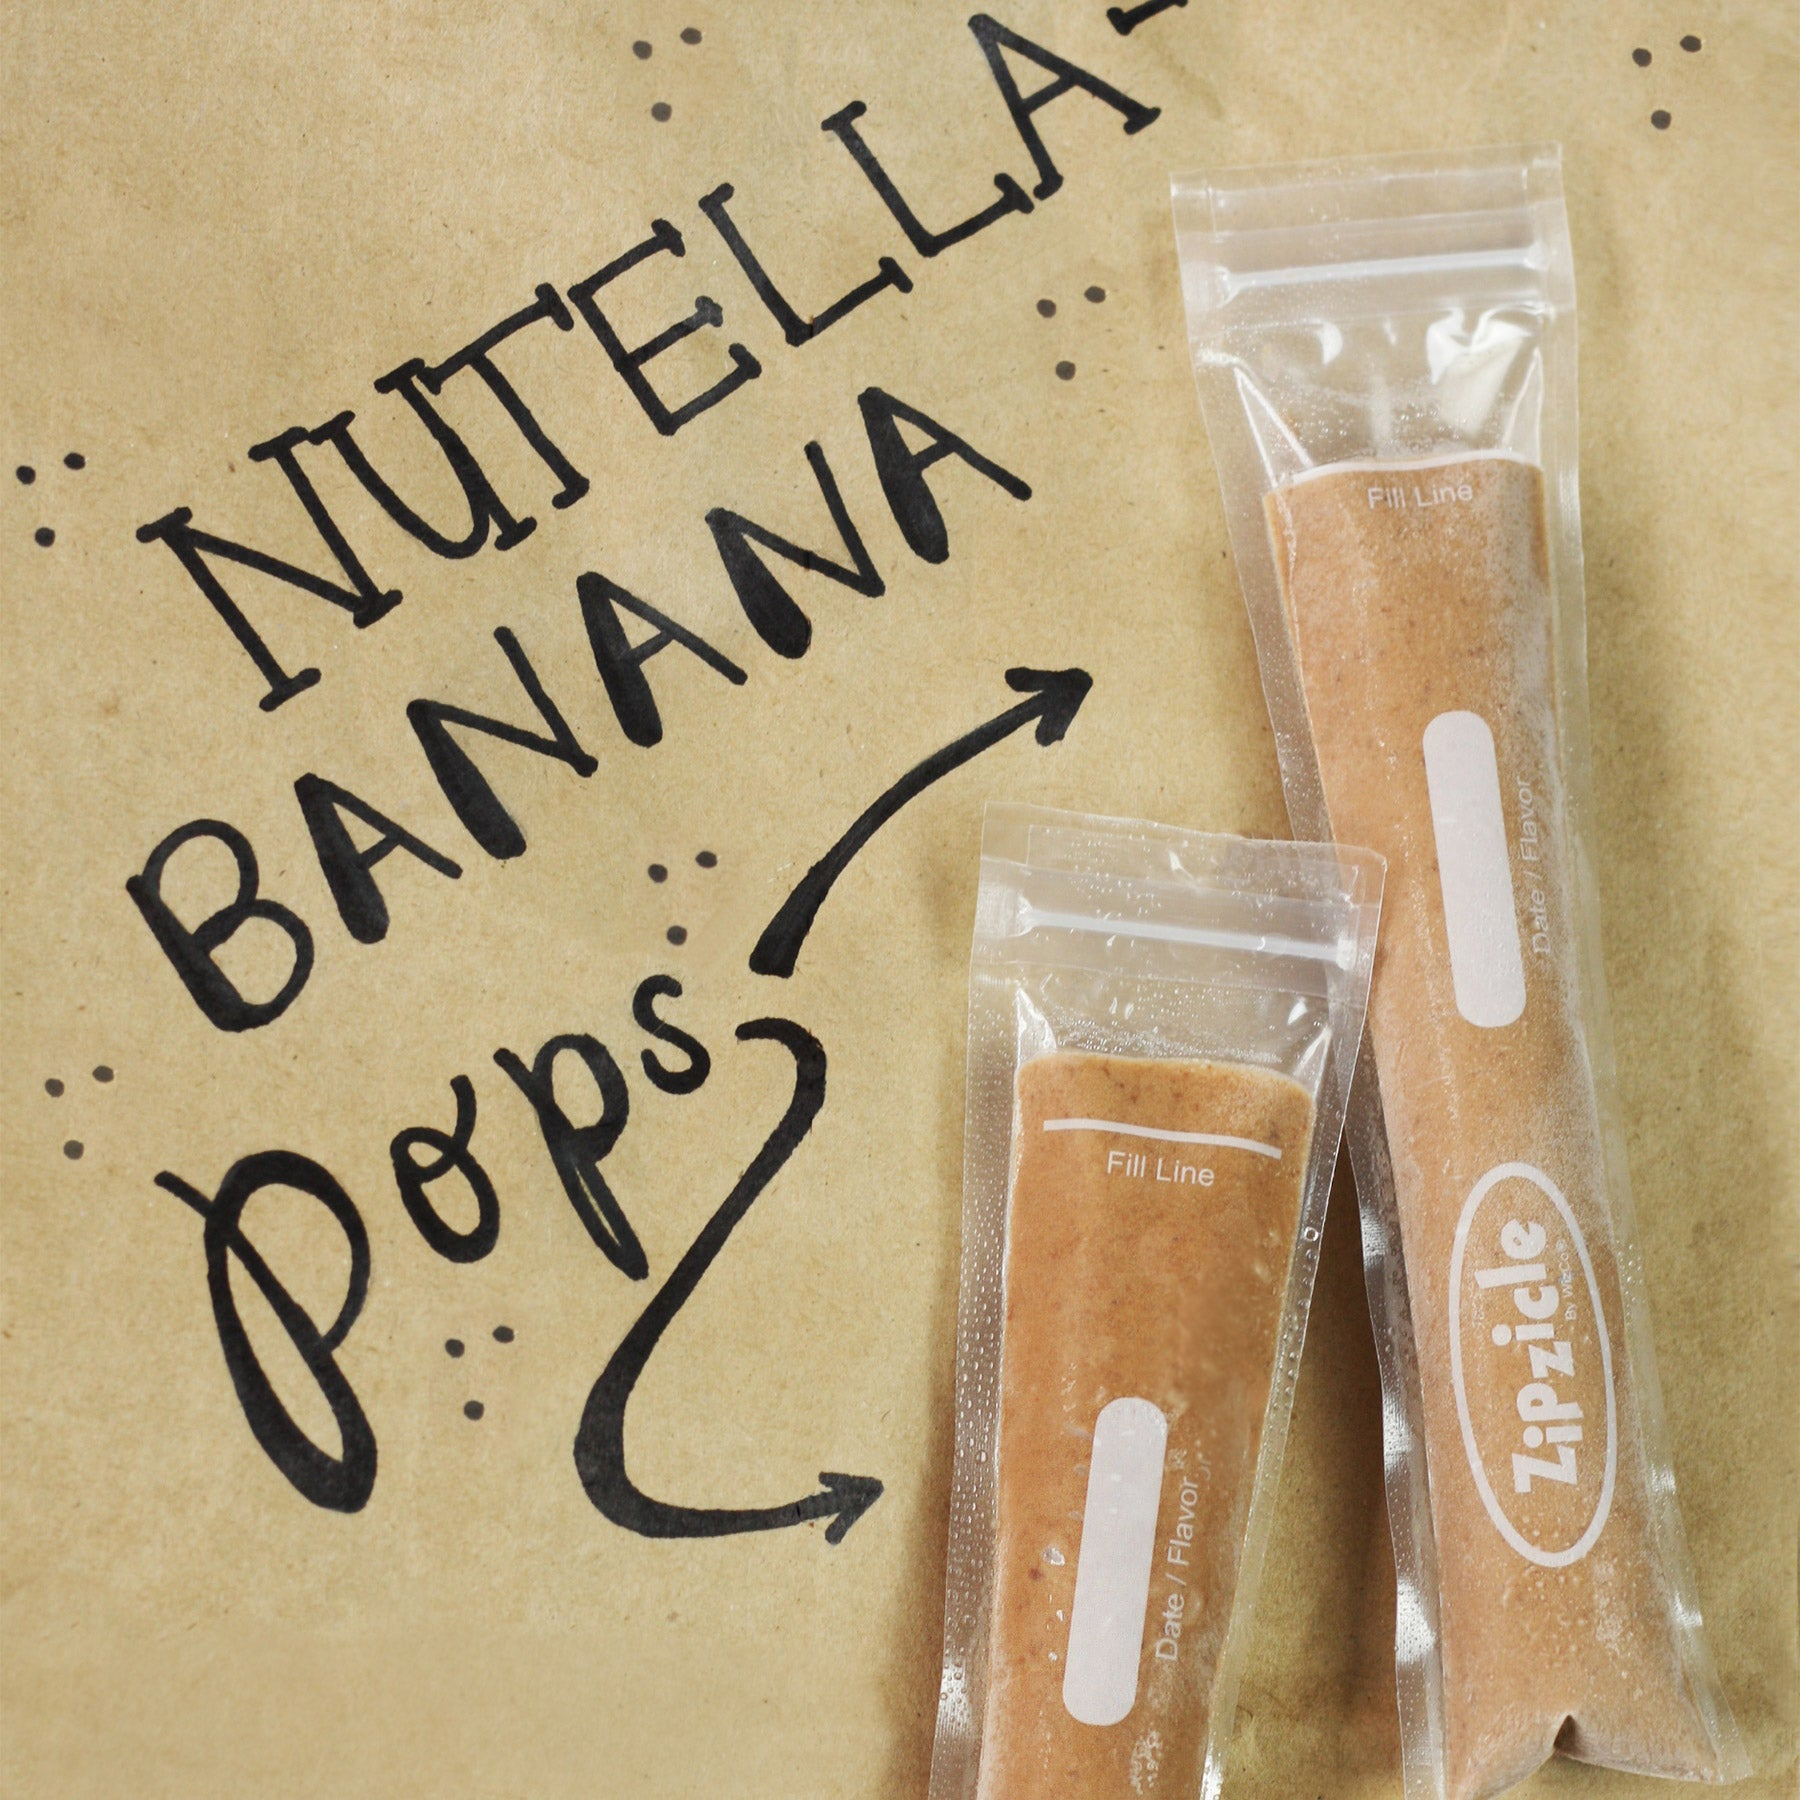 Nutella Banana Ice Pop